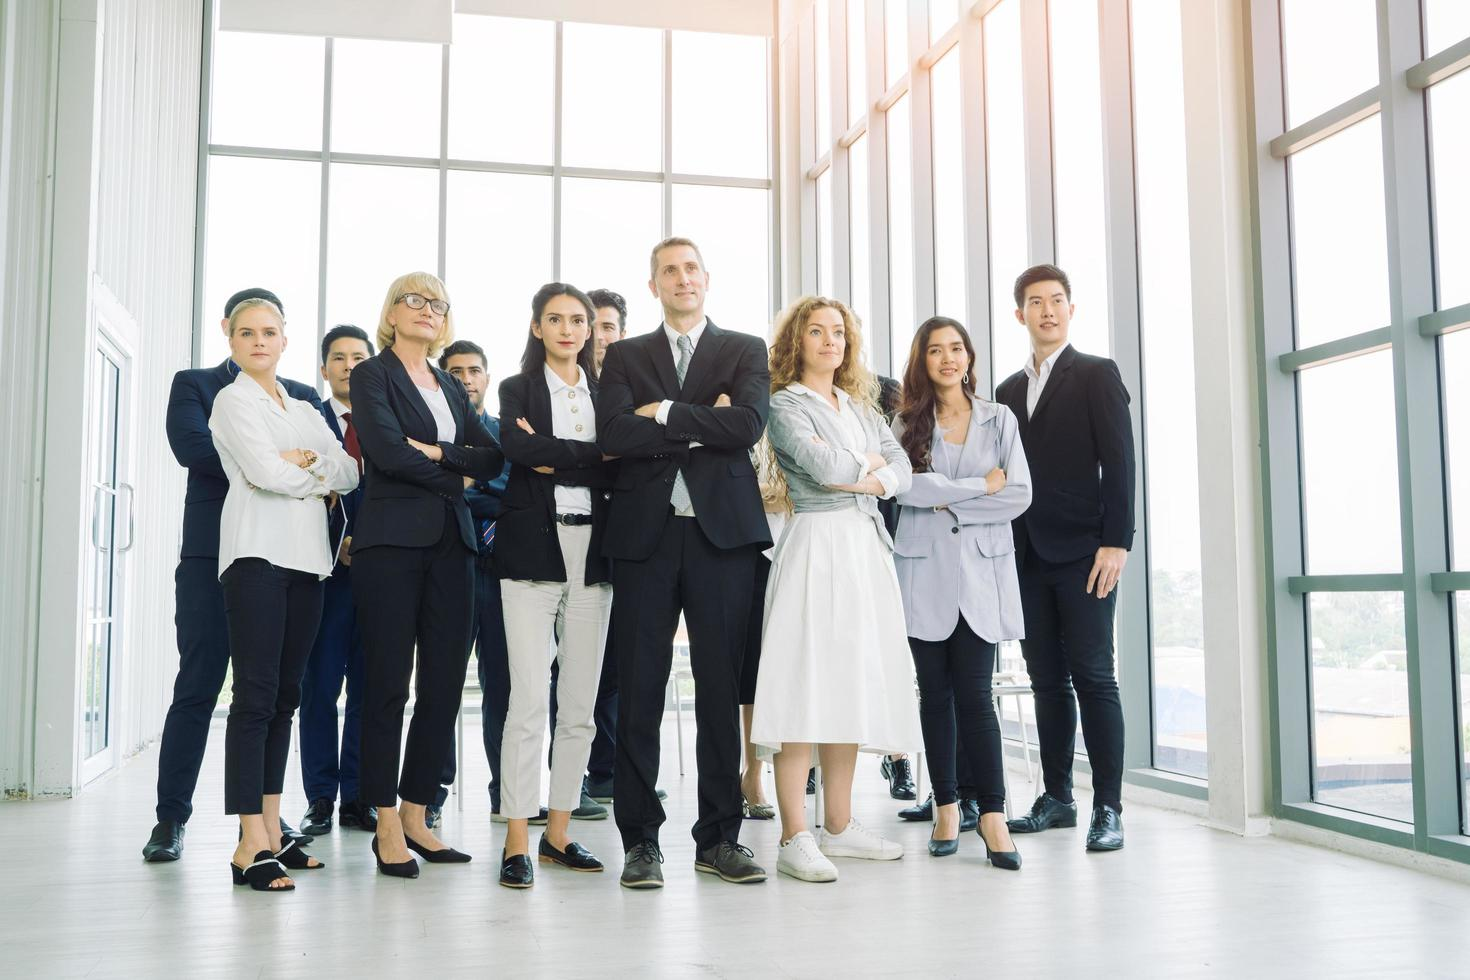 A group of professionals posing with crossed arms photo